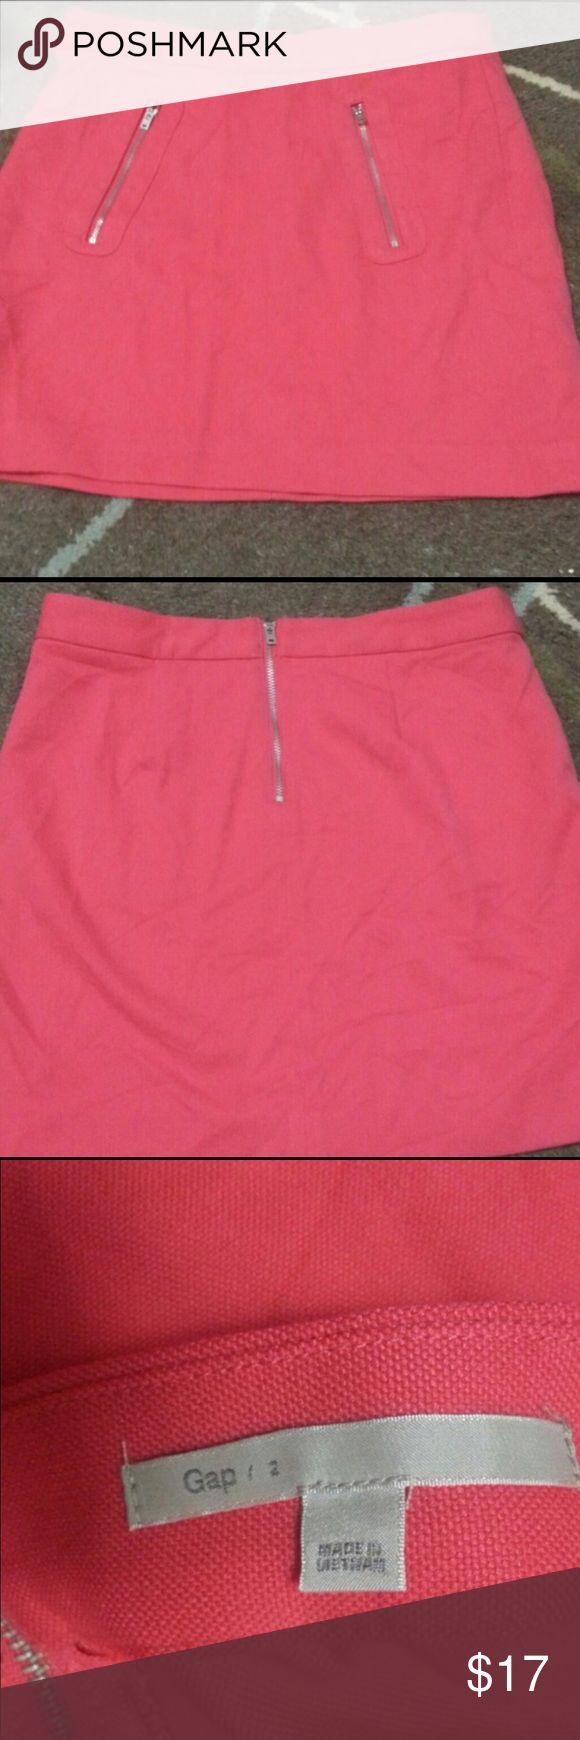 GAP Cute Pink Coral Skirt with Zippers Size 2 GAP Cute Pink Coral Skirt with Zippers Size 2. Great condition! Willing to Negotiate. GAP Skirts